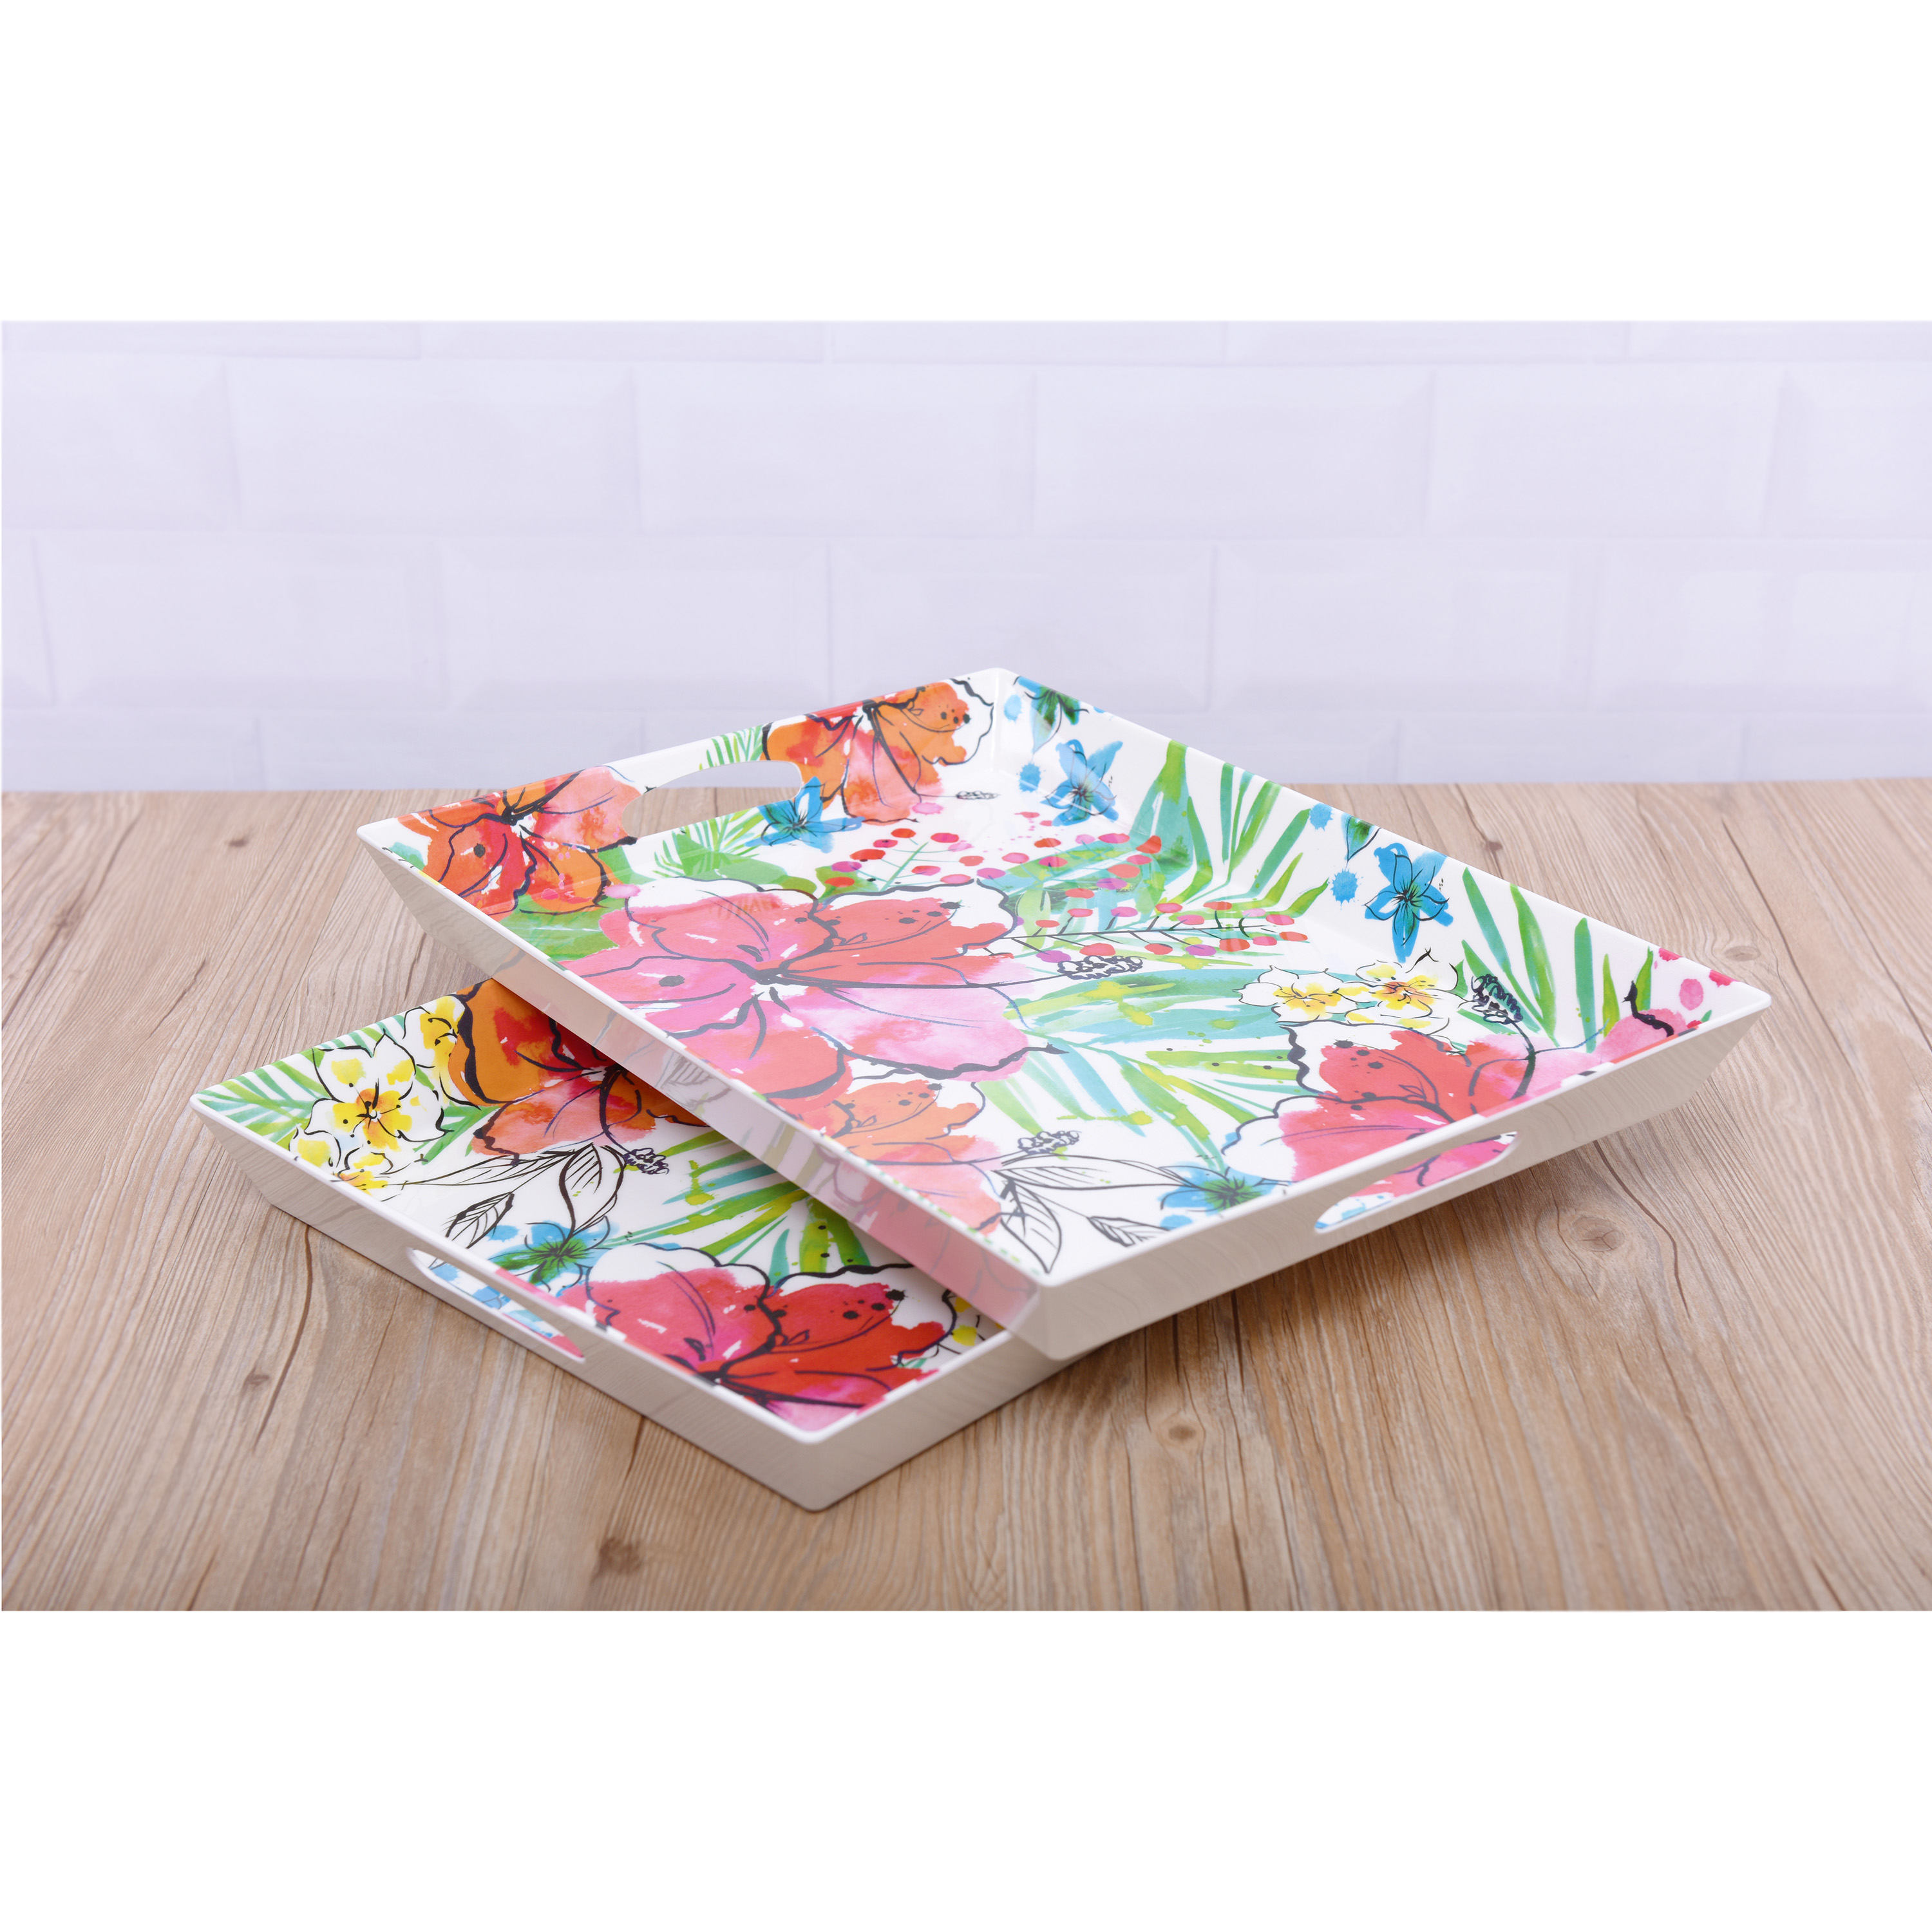 Mainstays Tropical Serve Tray, 2 Pack